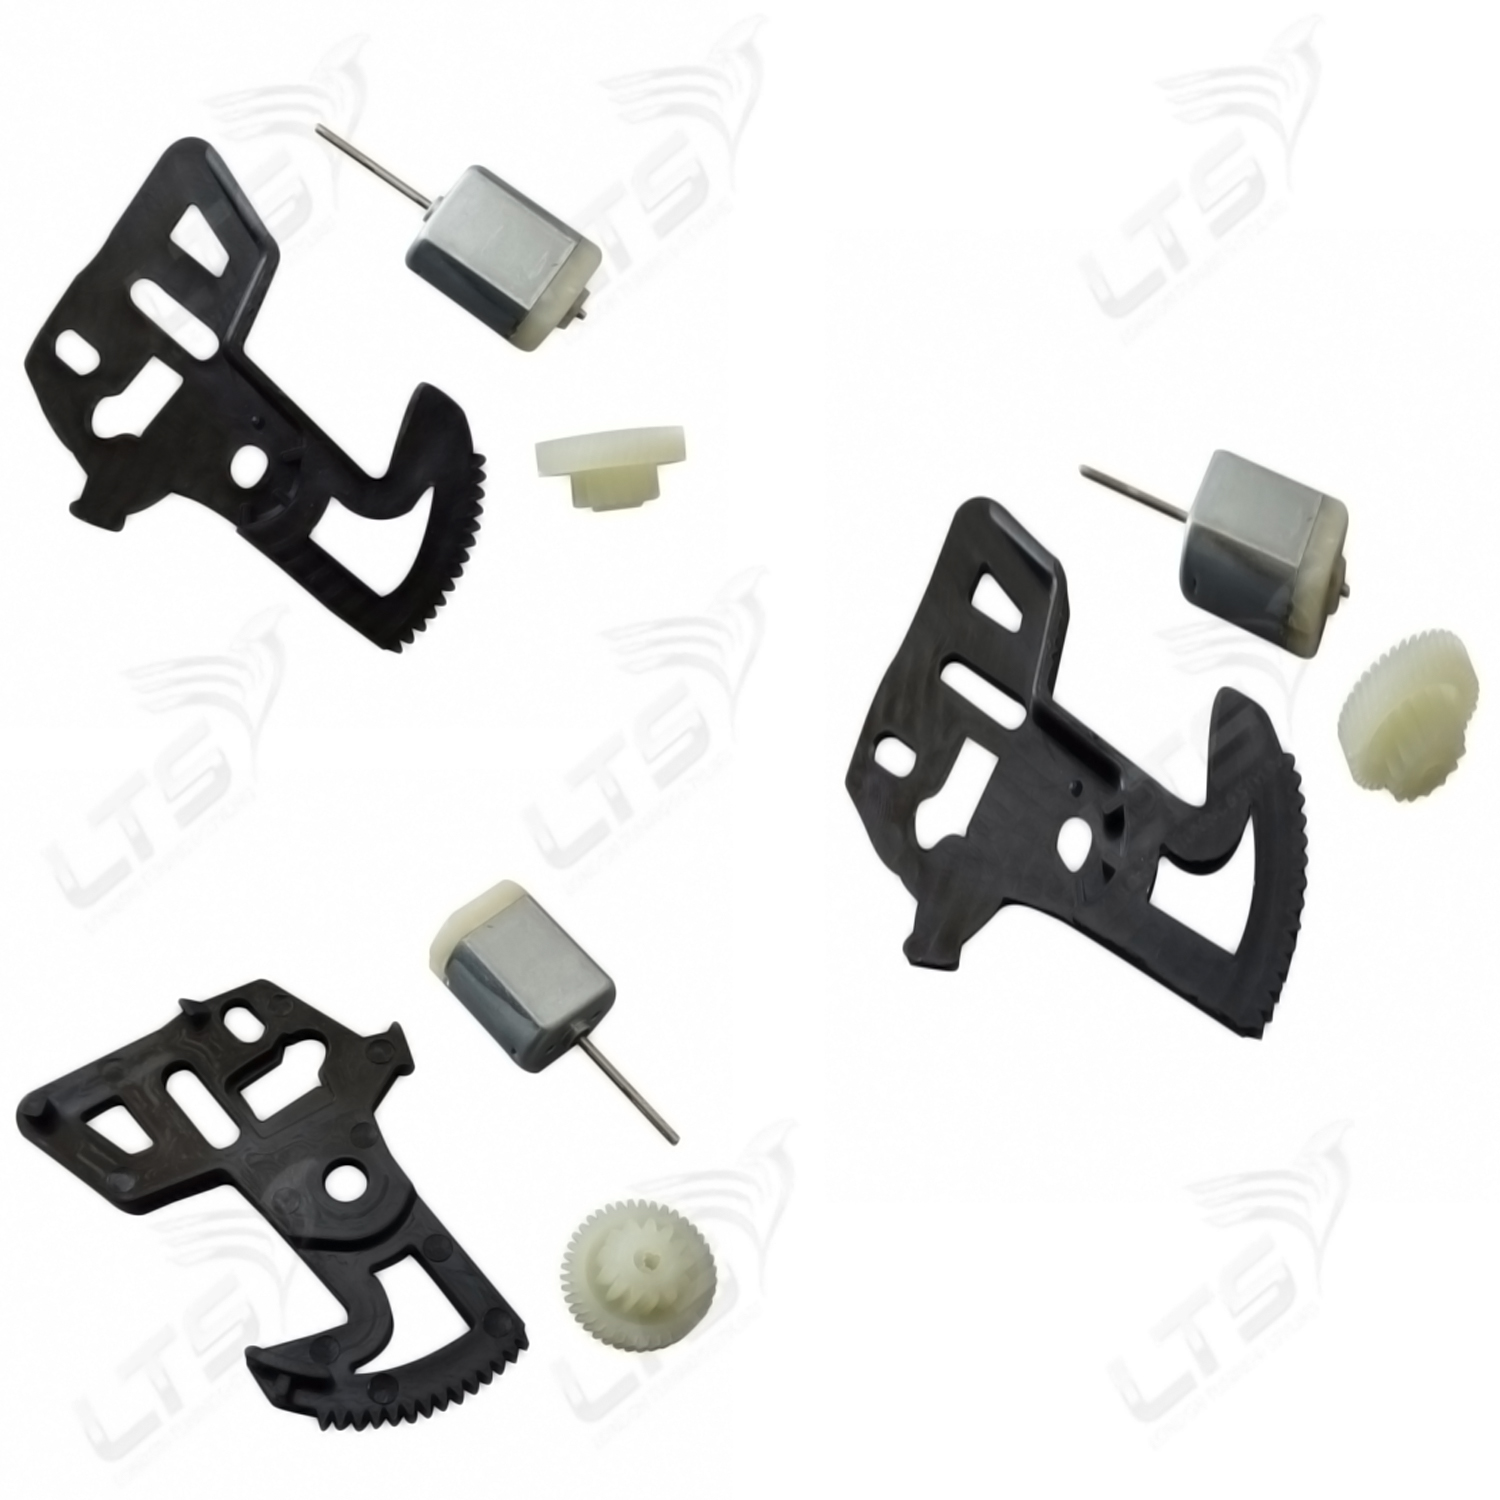 Vw Caddy Transporter T5 Slider Door Lock Gears And Motor Set 2003 2010 Models Vehicle Parts Accessories Car Parts